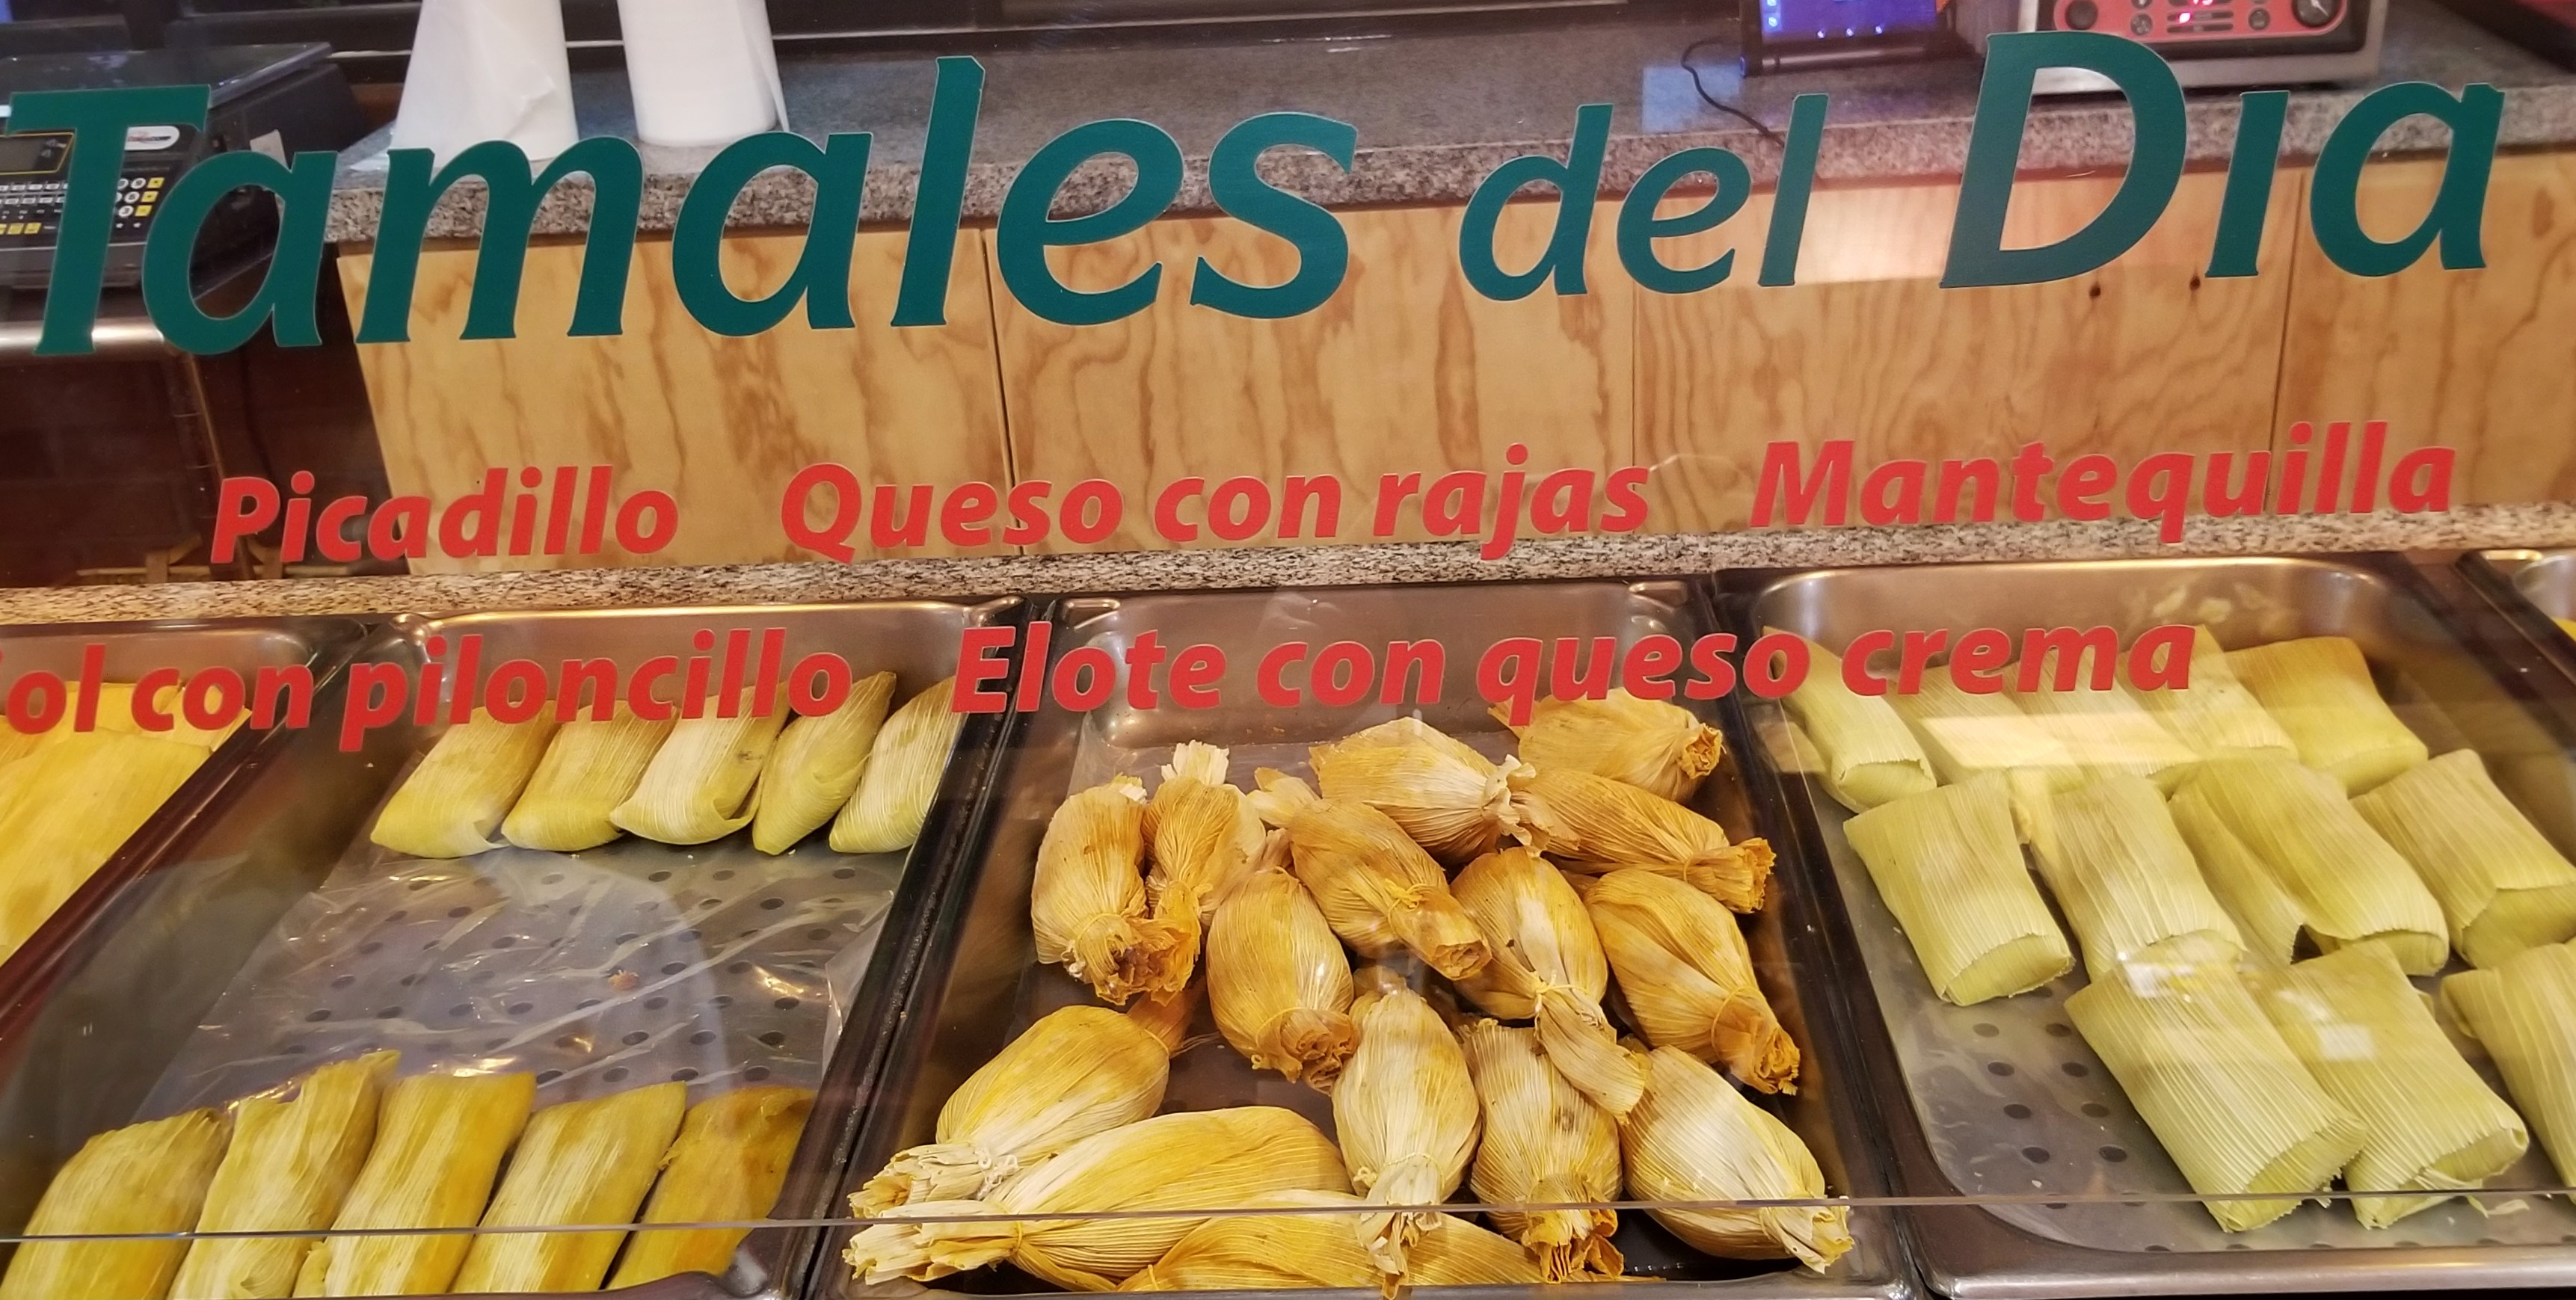 002 tamales in Mexico